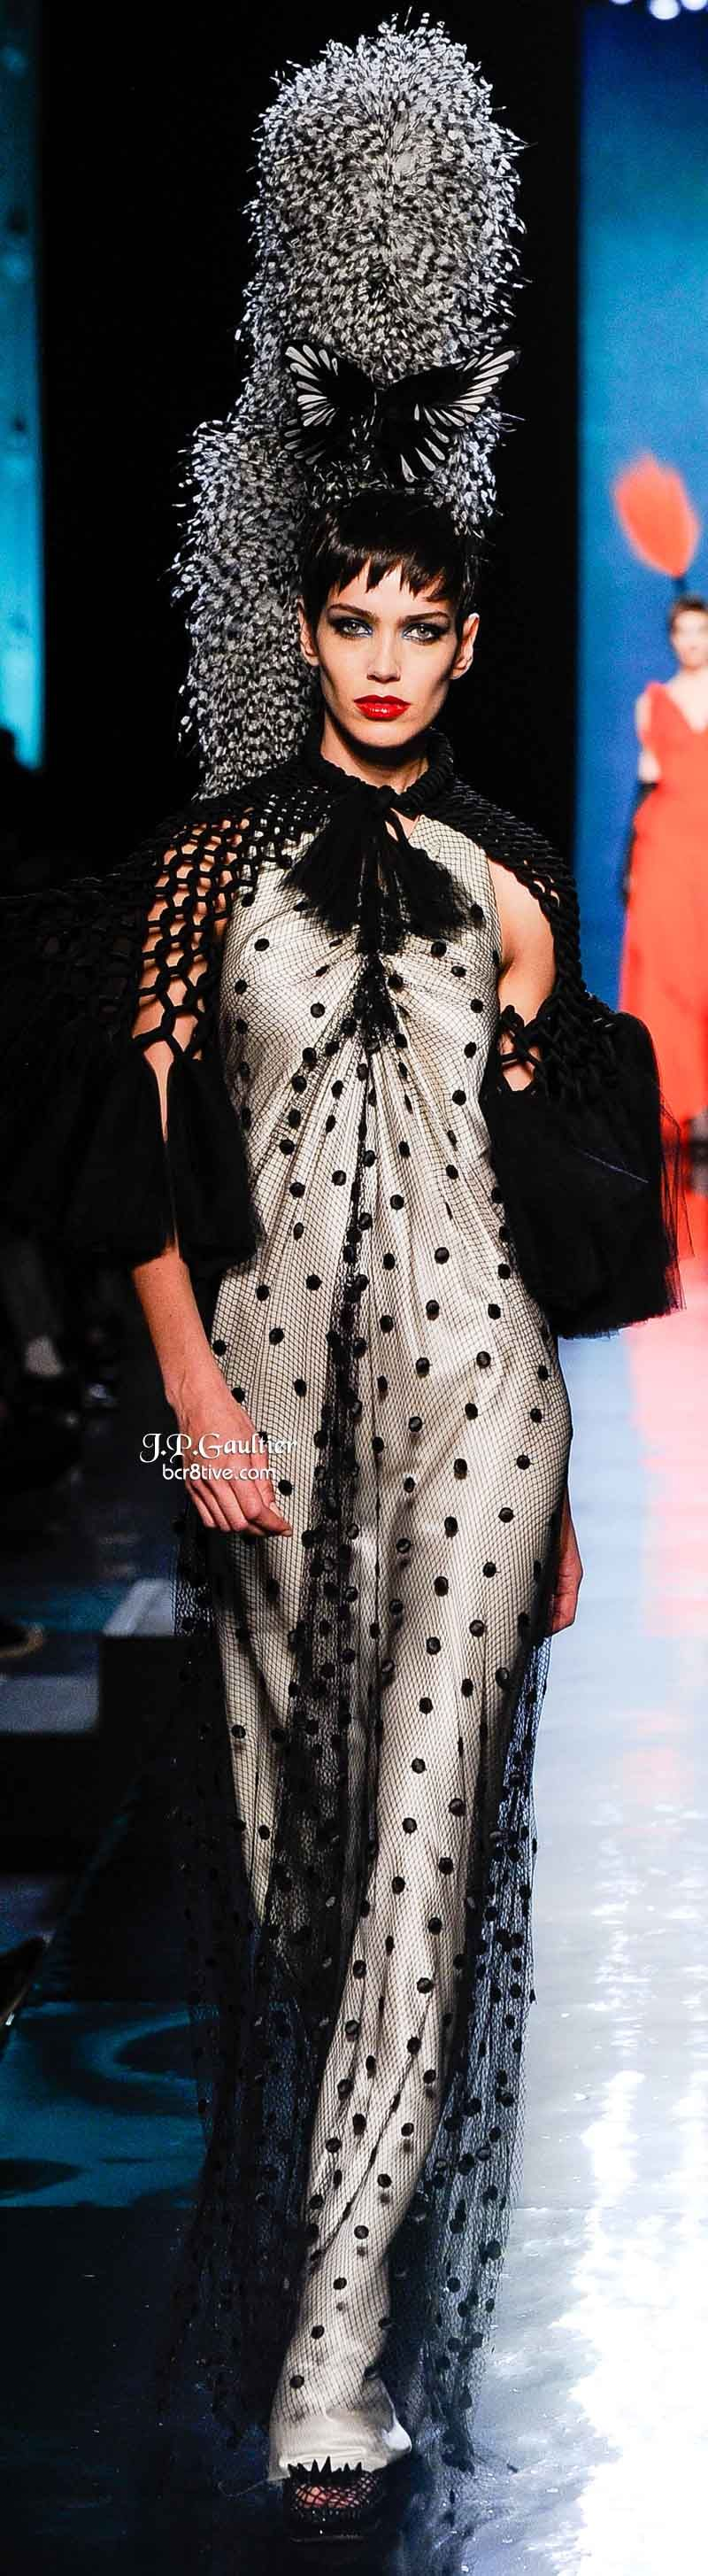 Jean Paul Gaultier Spring 2014 Couture Style couture